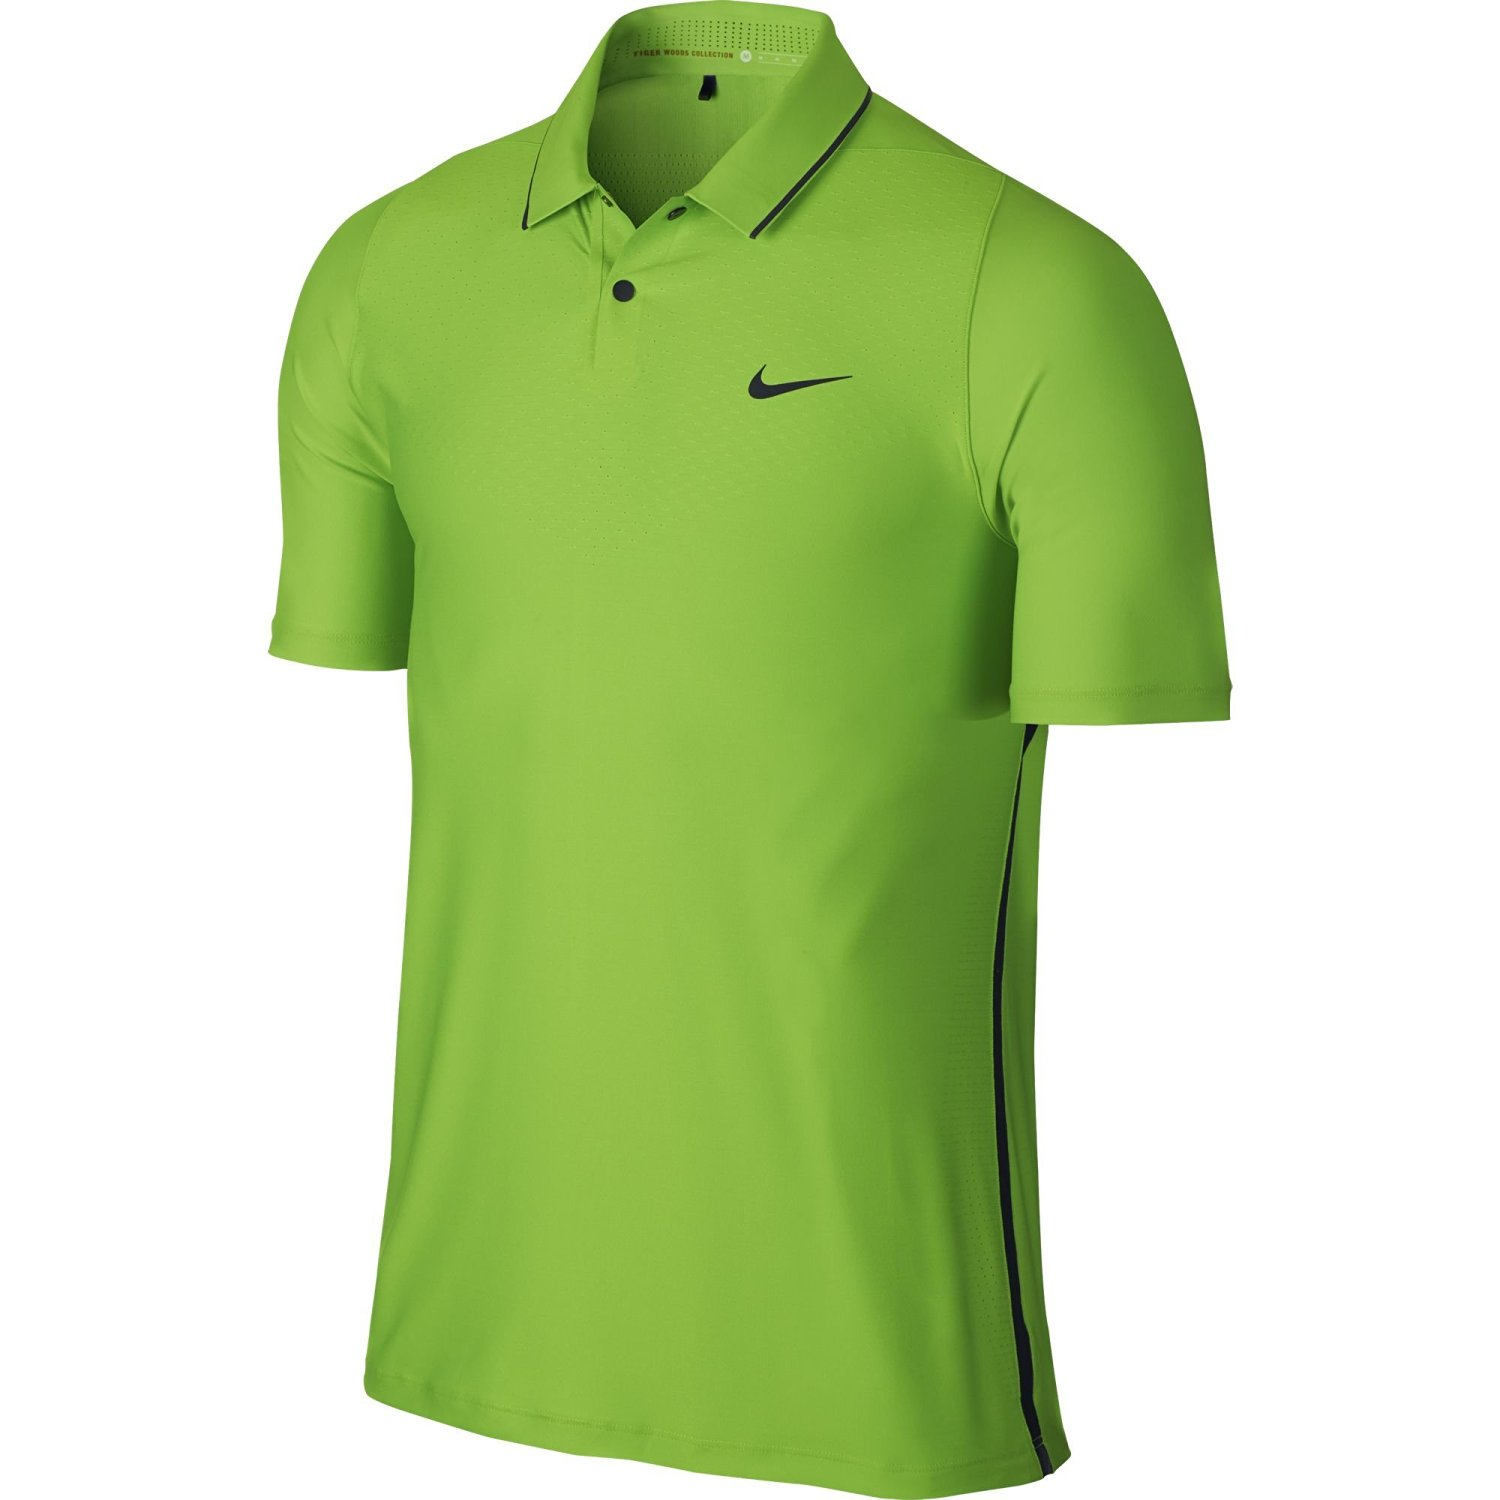 5facc3e3d16 Get Quotations · NEW Nike Tiger Woods TW VL Max HyperCool Polo Action  Green Black Large Shirt